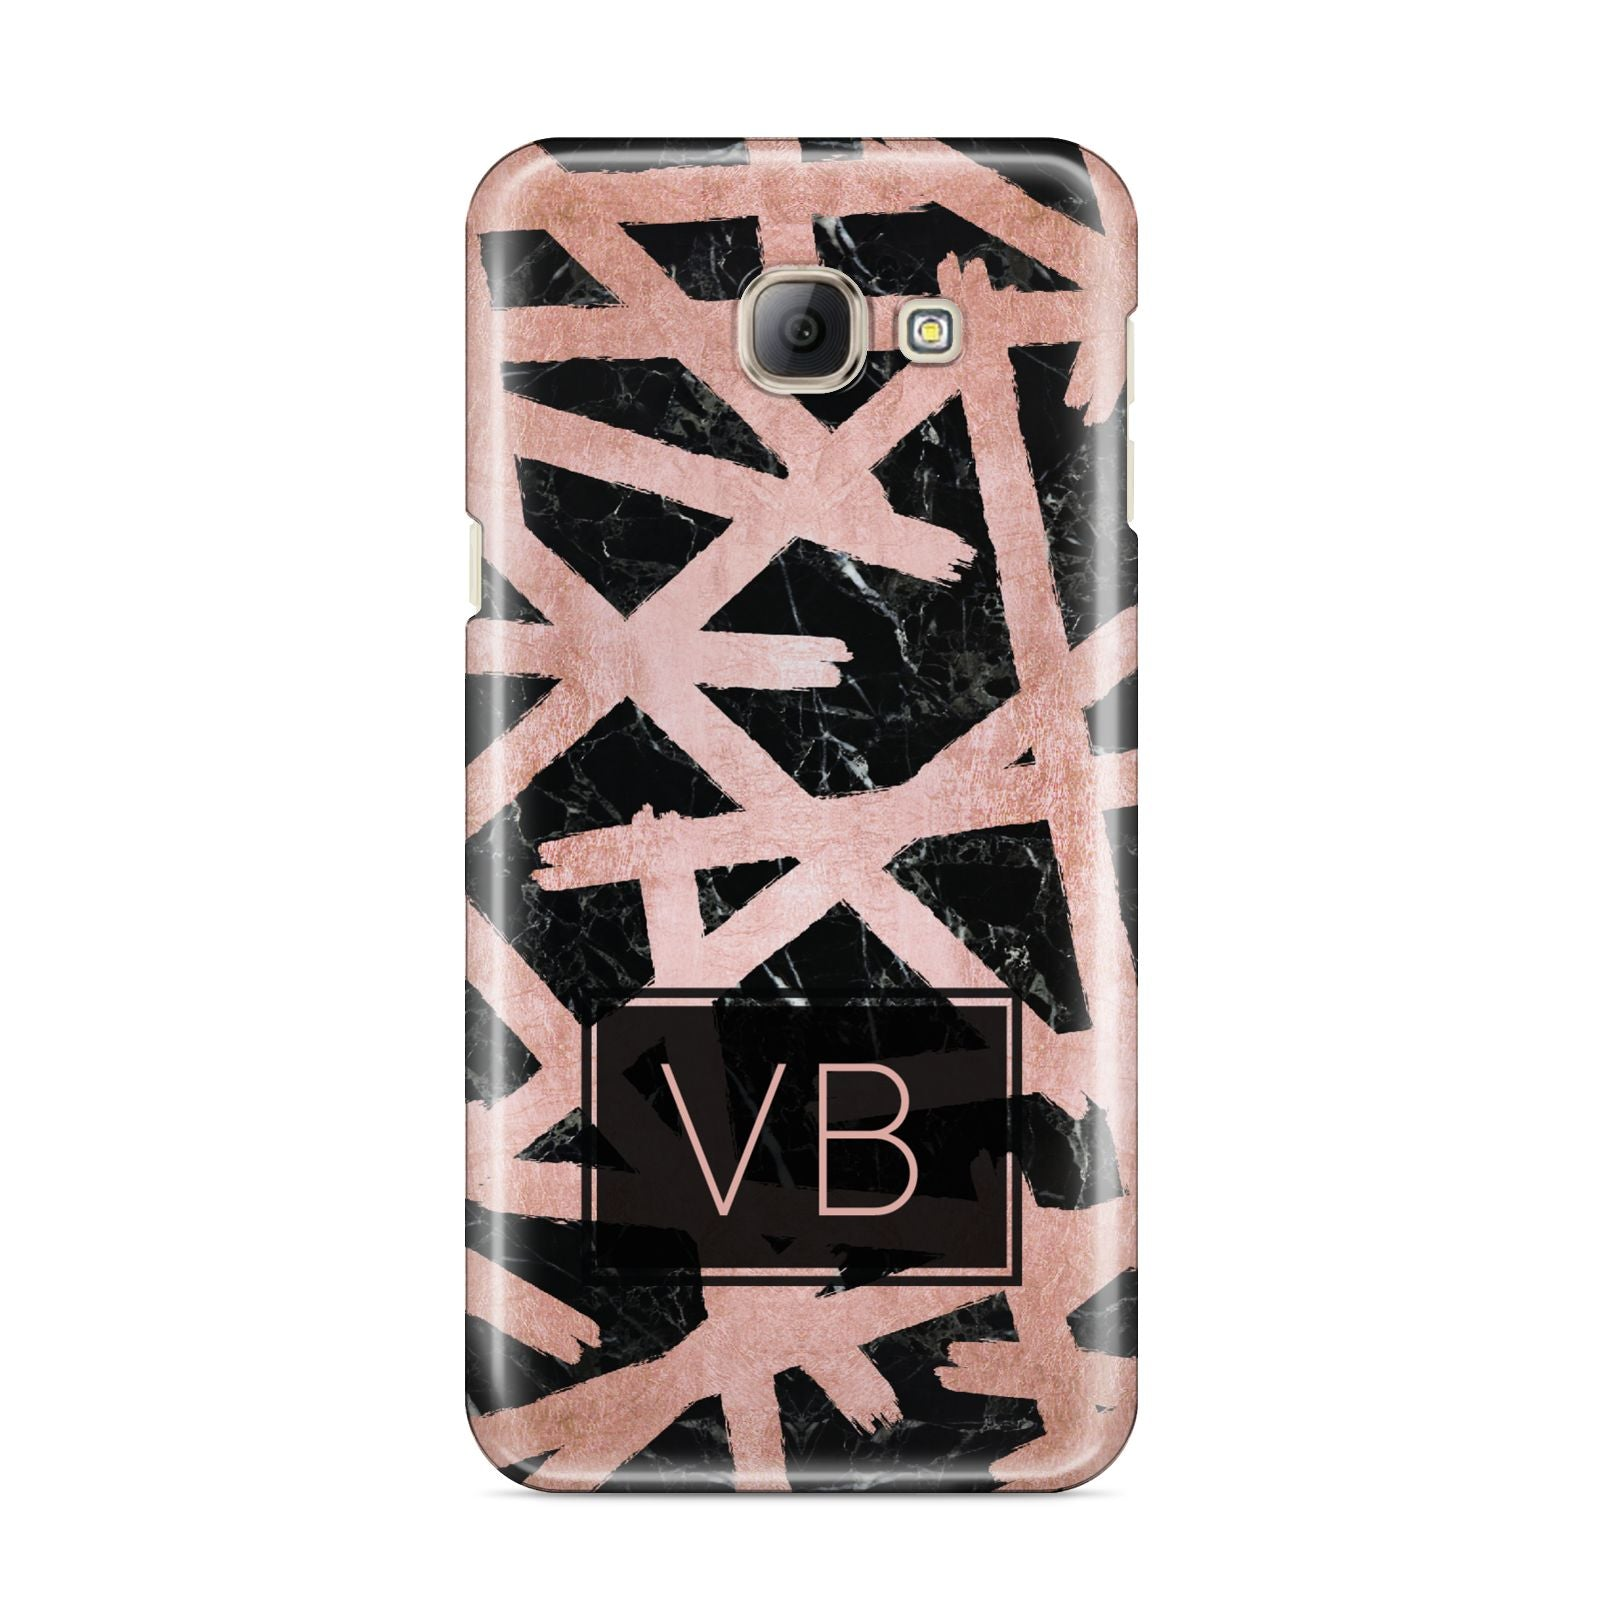 Personalised Rose Gold Effect Samsung Galaxy A8 2016 Case